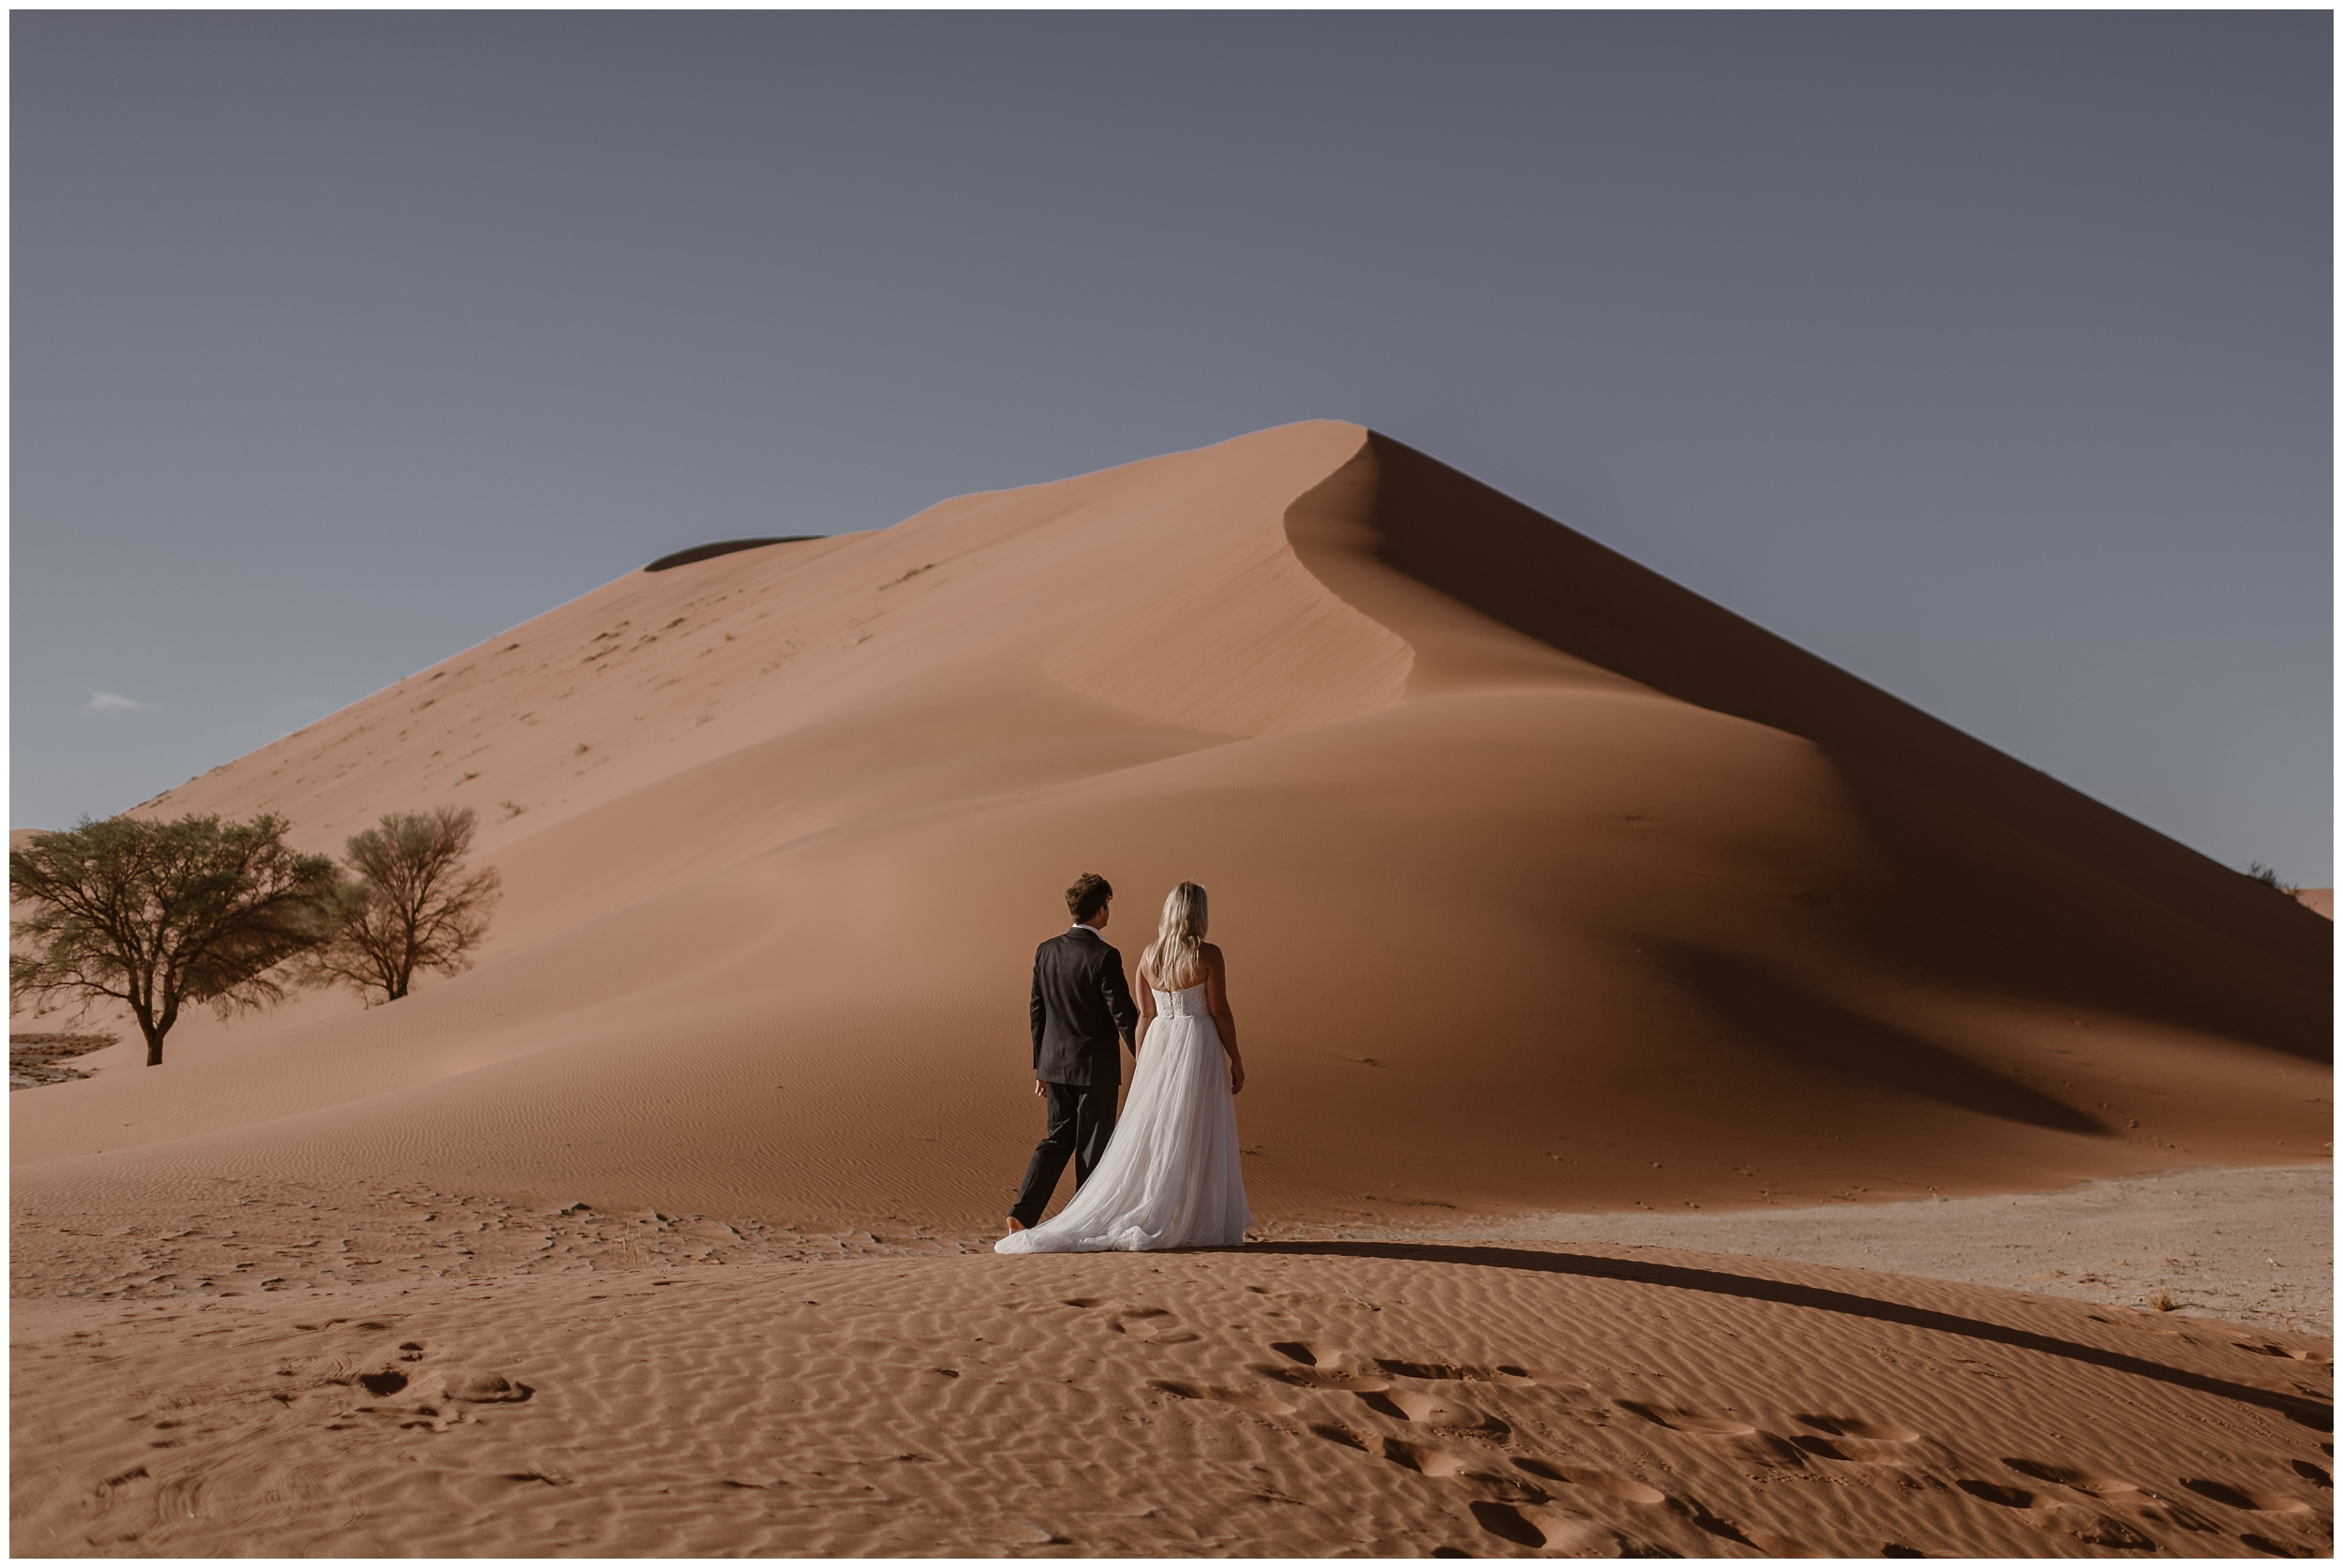 A bride and groom walk toward a gorgeous, enormous sand dune in the middle of the desert. The two are walking hand-in-hand toward their elopement ceremony location— these elopement photos were captured by elopement wedding photographer Adventure Instead.